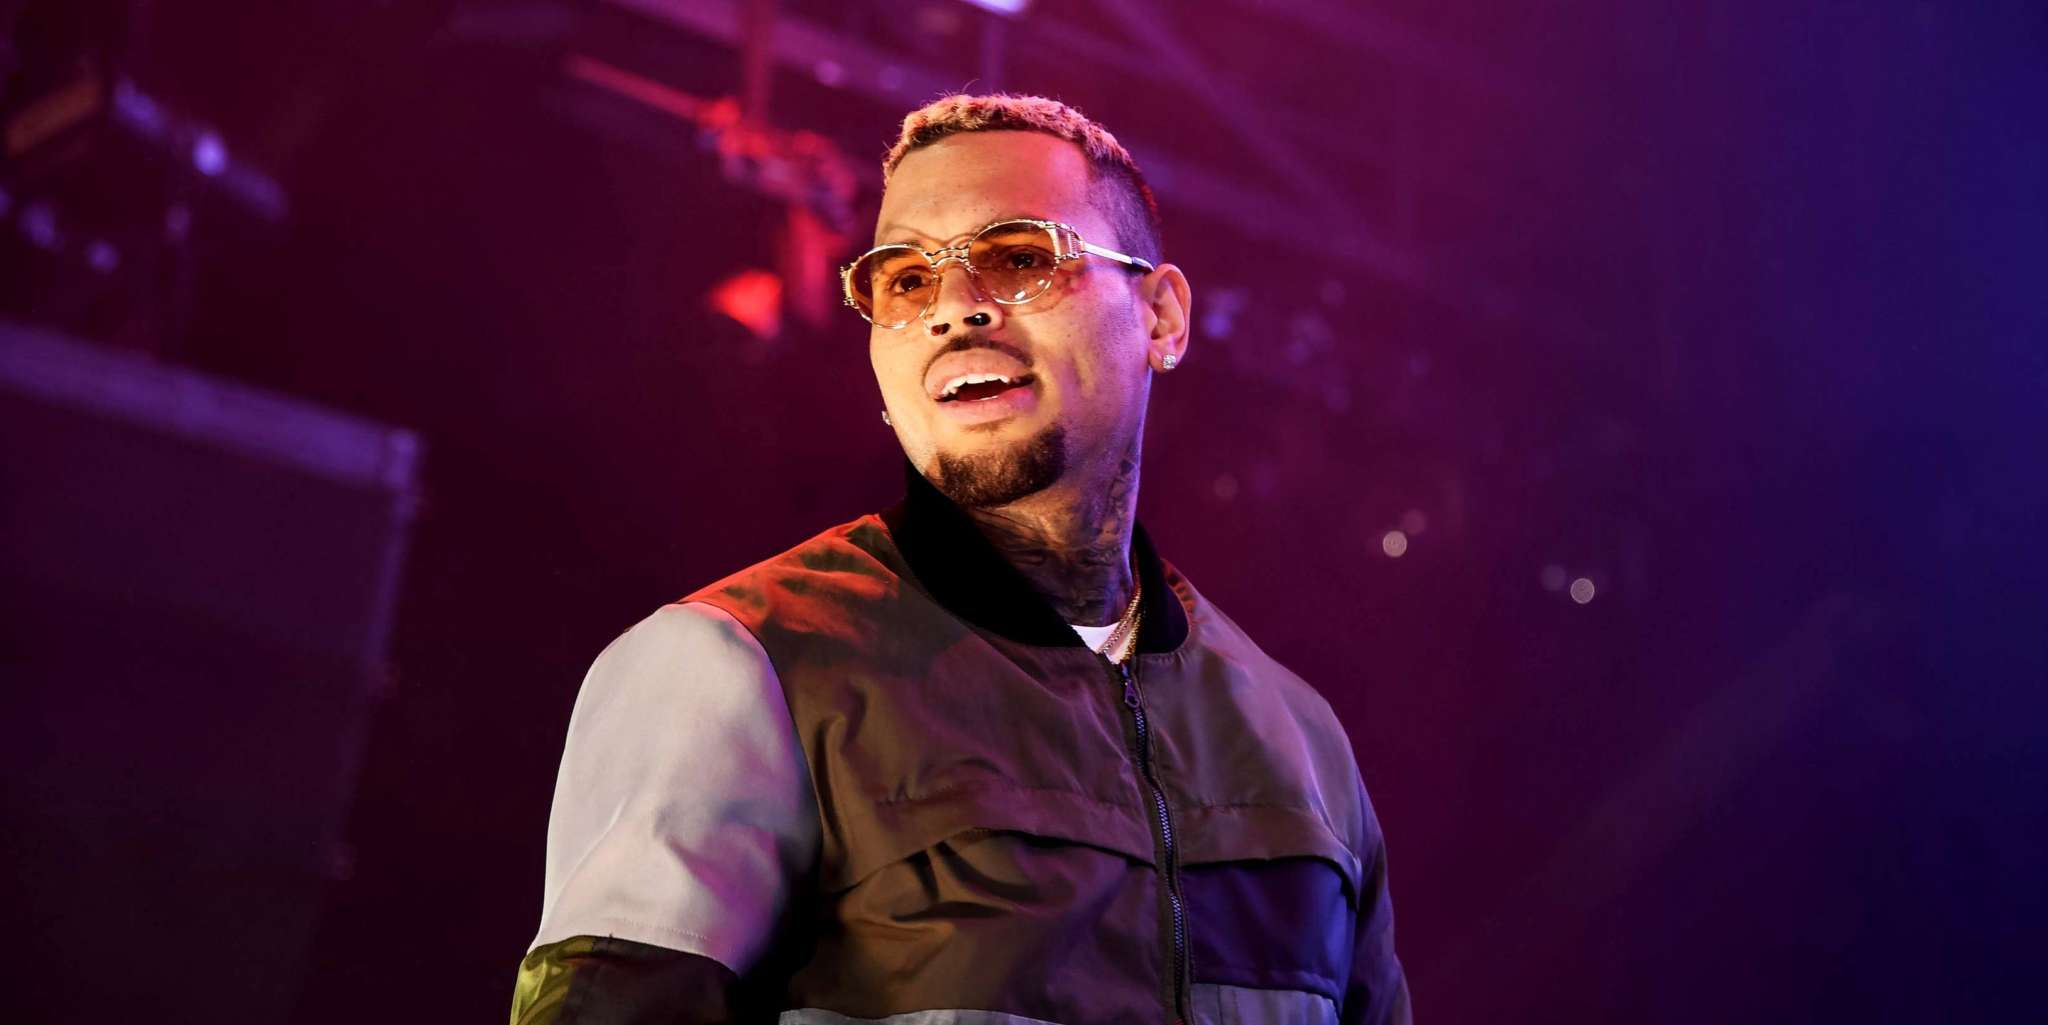 Chris Brown Is Spotted With His Alleged New Girlfriend Amidst Ammika Harris Pregnancy Rumors - Here's The Photo